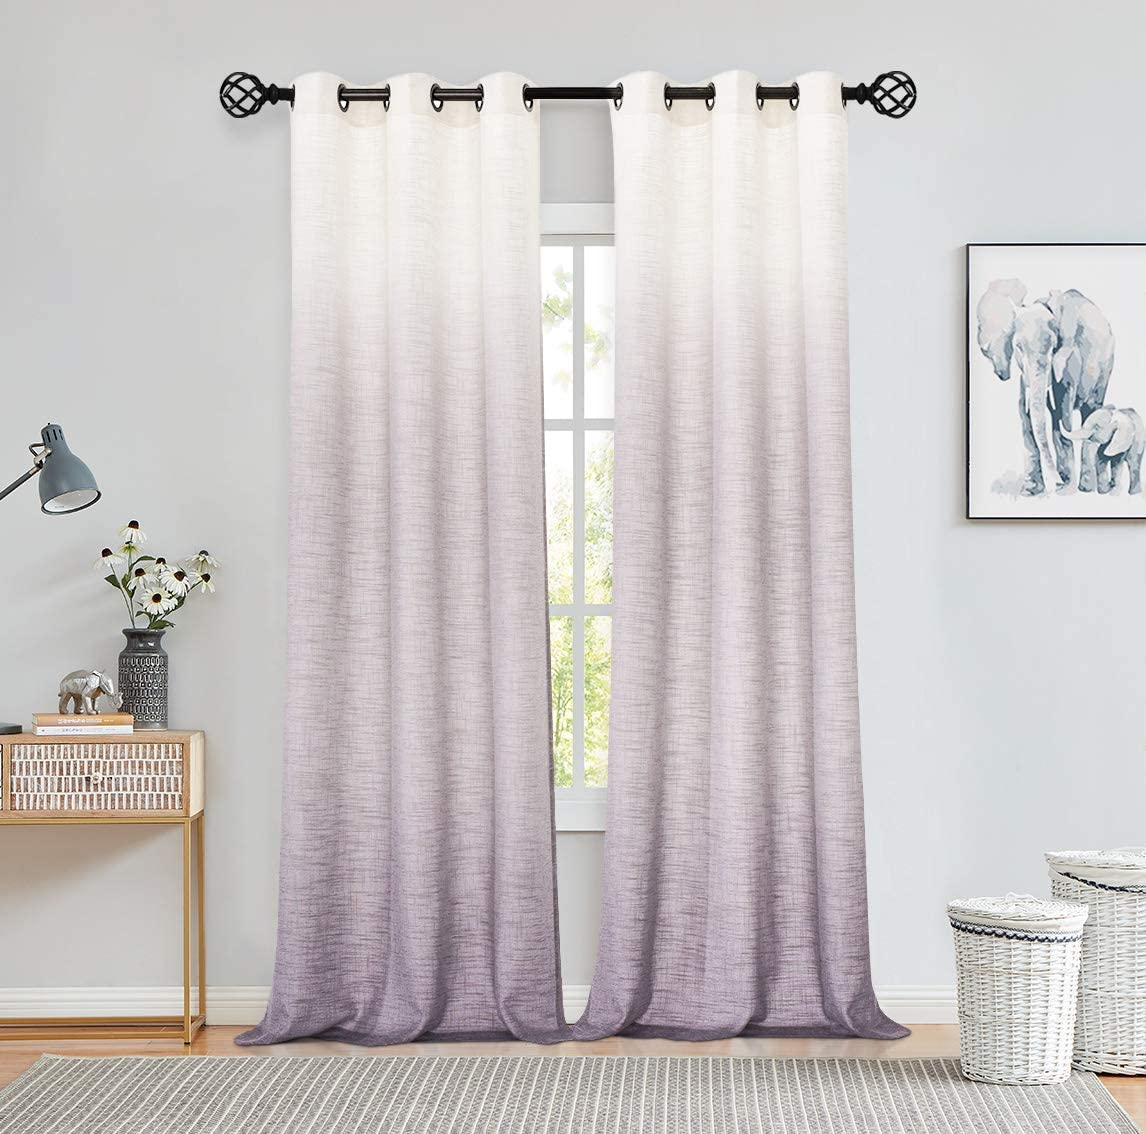 "Central Park Ombre Window Curtain Panel Linen Gradient Print on Rayon Blend Fabric Drapery Treatments for Living Room/Bedroom, Cream White to Lavender Purple, 40"" x 84"", Set of 2"